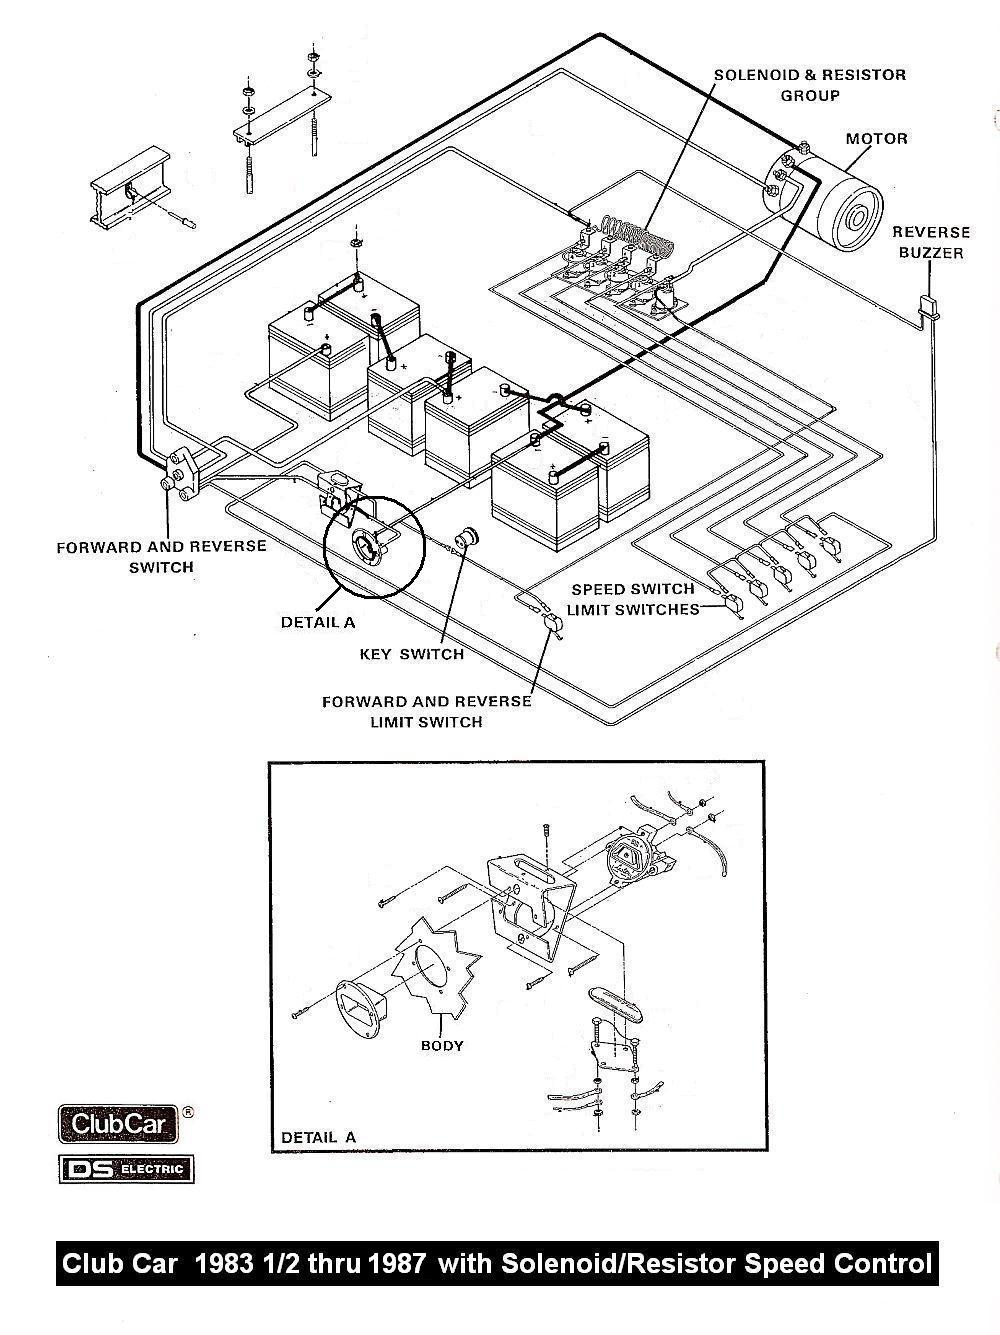 2002 Gem Car Wiring Diagram 27 Wiring Diagram Images Wiring Chinese Electric  Vehicle Wiring Diagram 2004 Gem Car Wiring Diagram